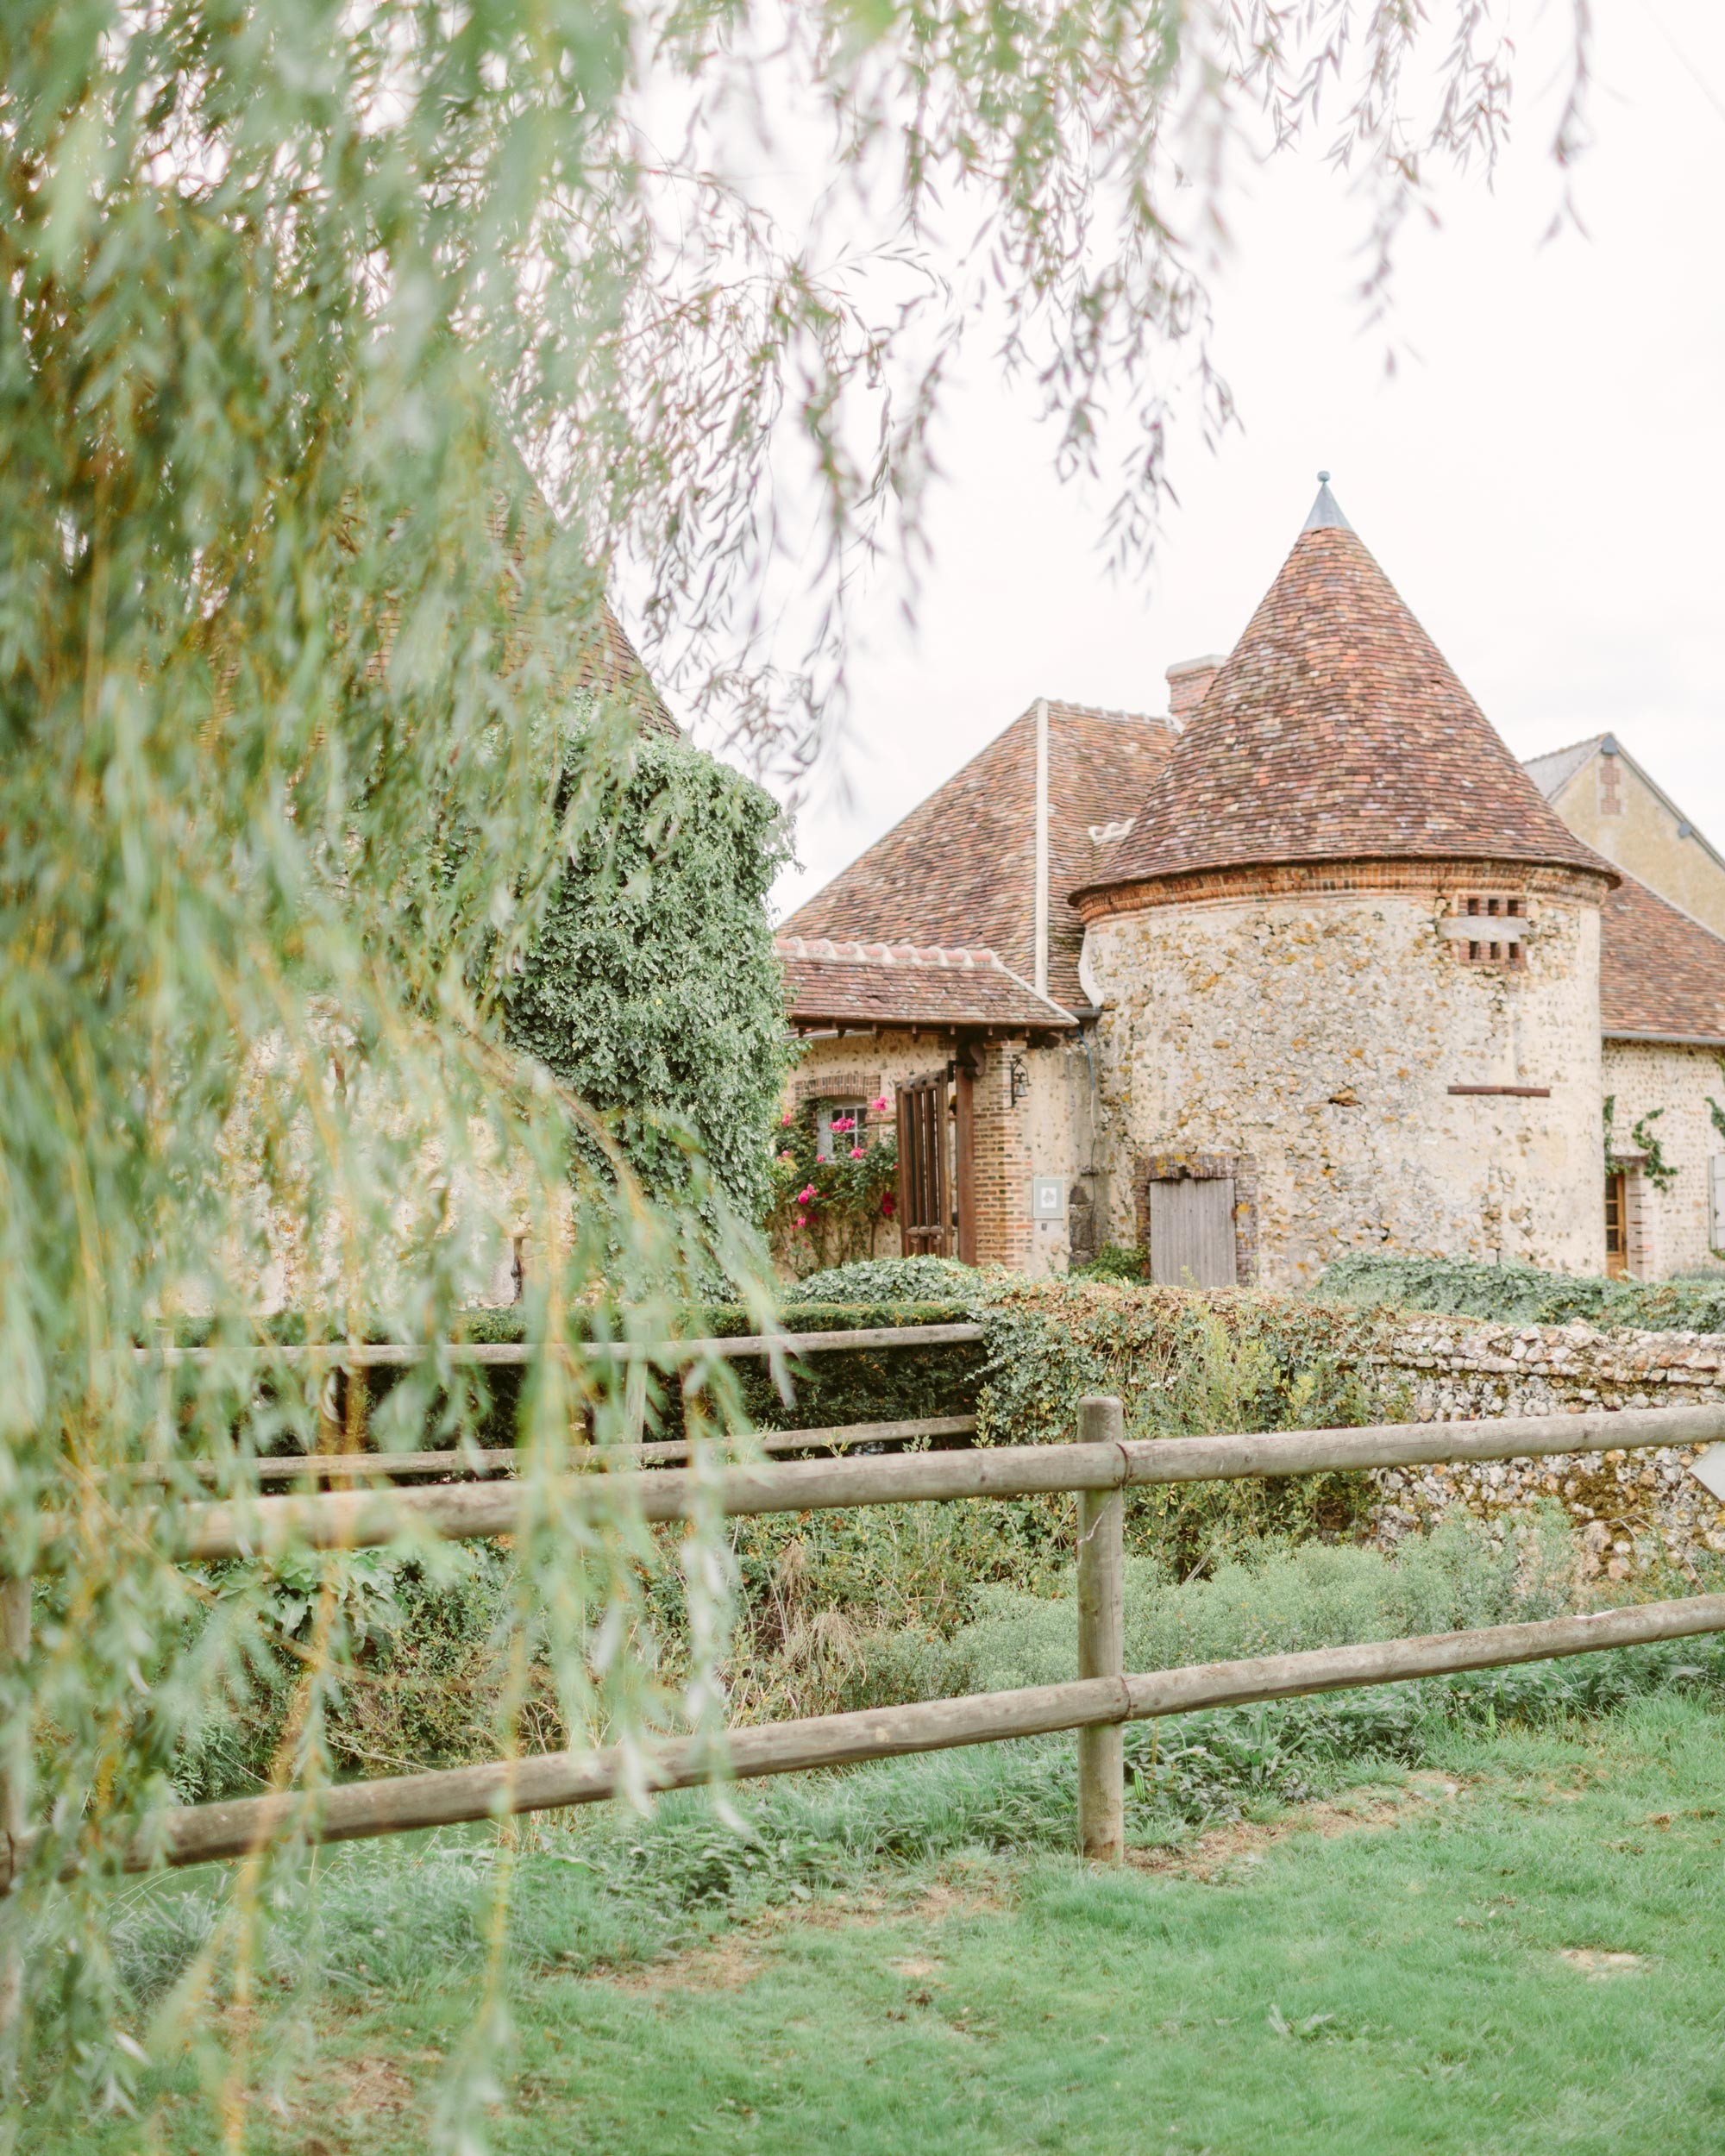 anneclaire-chris-wedding-france-venue-016-s113034-00716.jpg